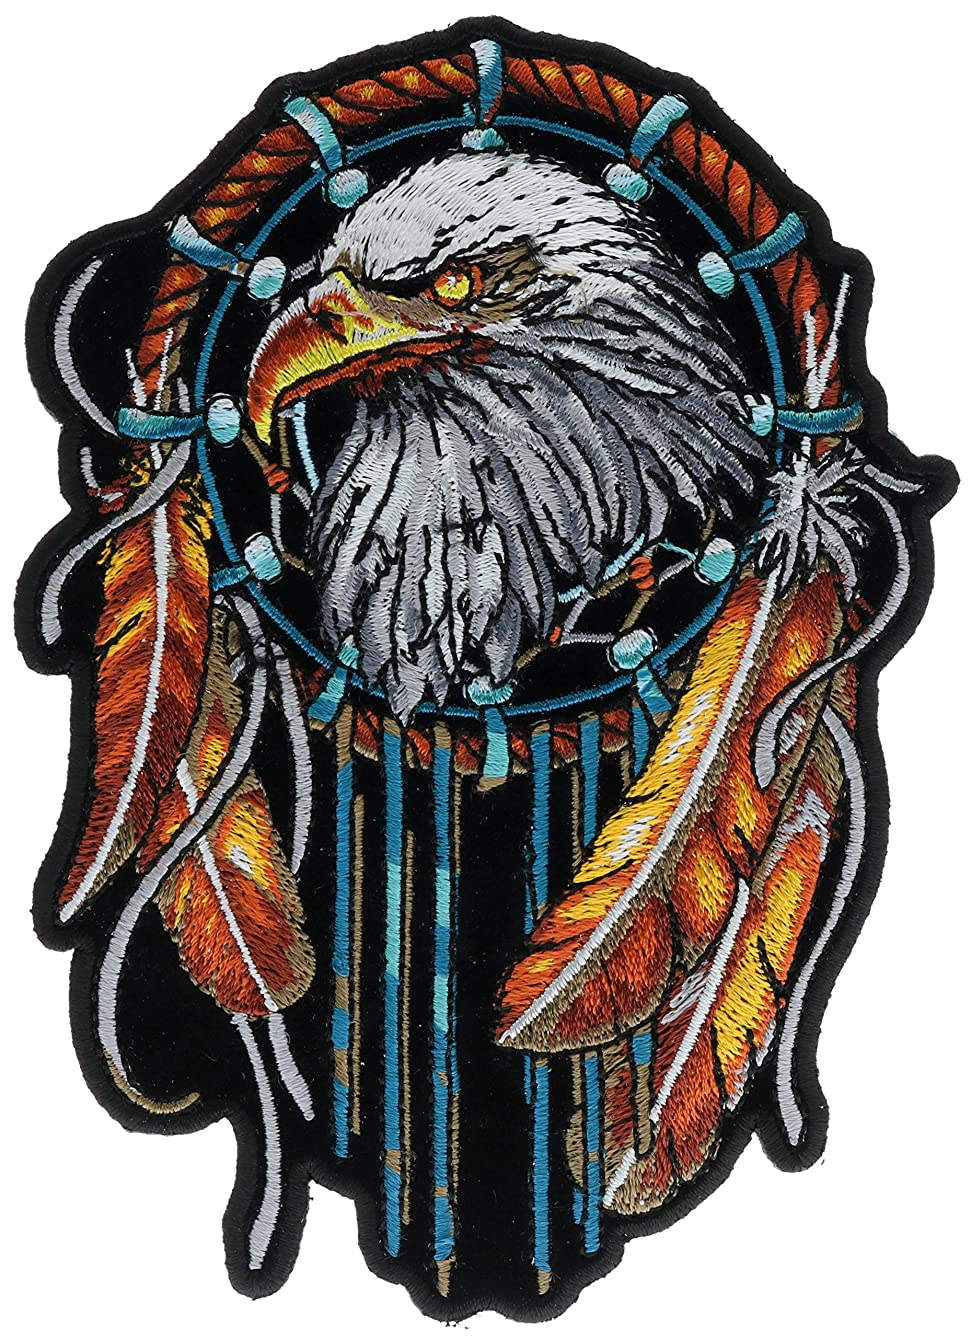 Eagle Dream Catcher 4 x 6 inch Iron On Patch HTL10147